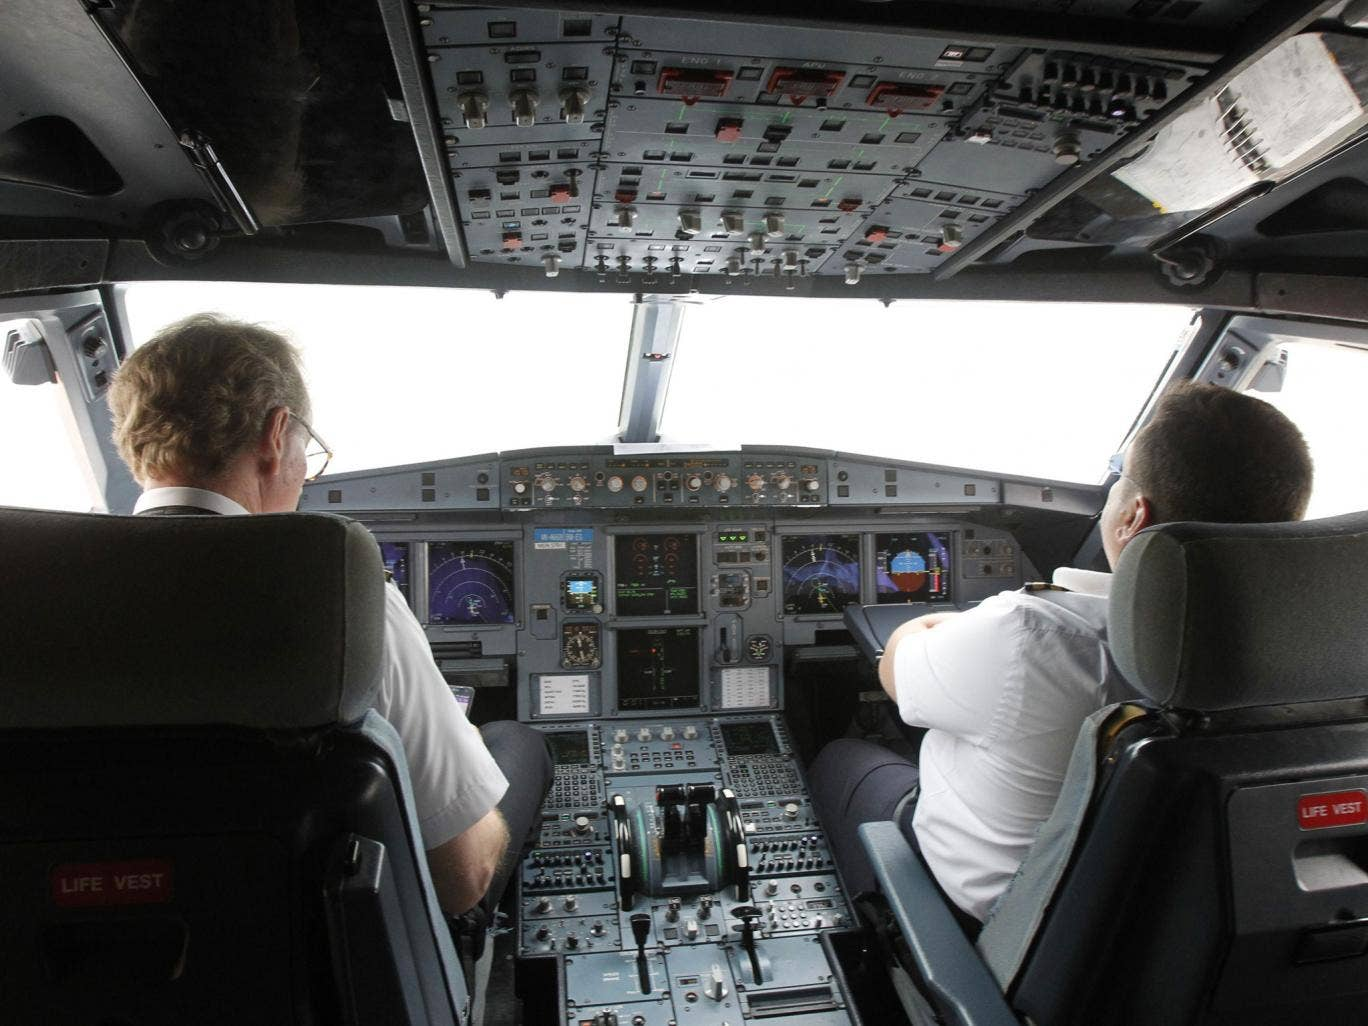 Proposed new rules on pilots' working hours could lead to air crews flying while 'dangerously fatigued', union officials have warned